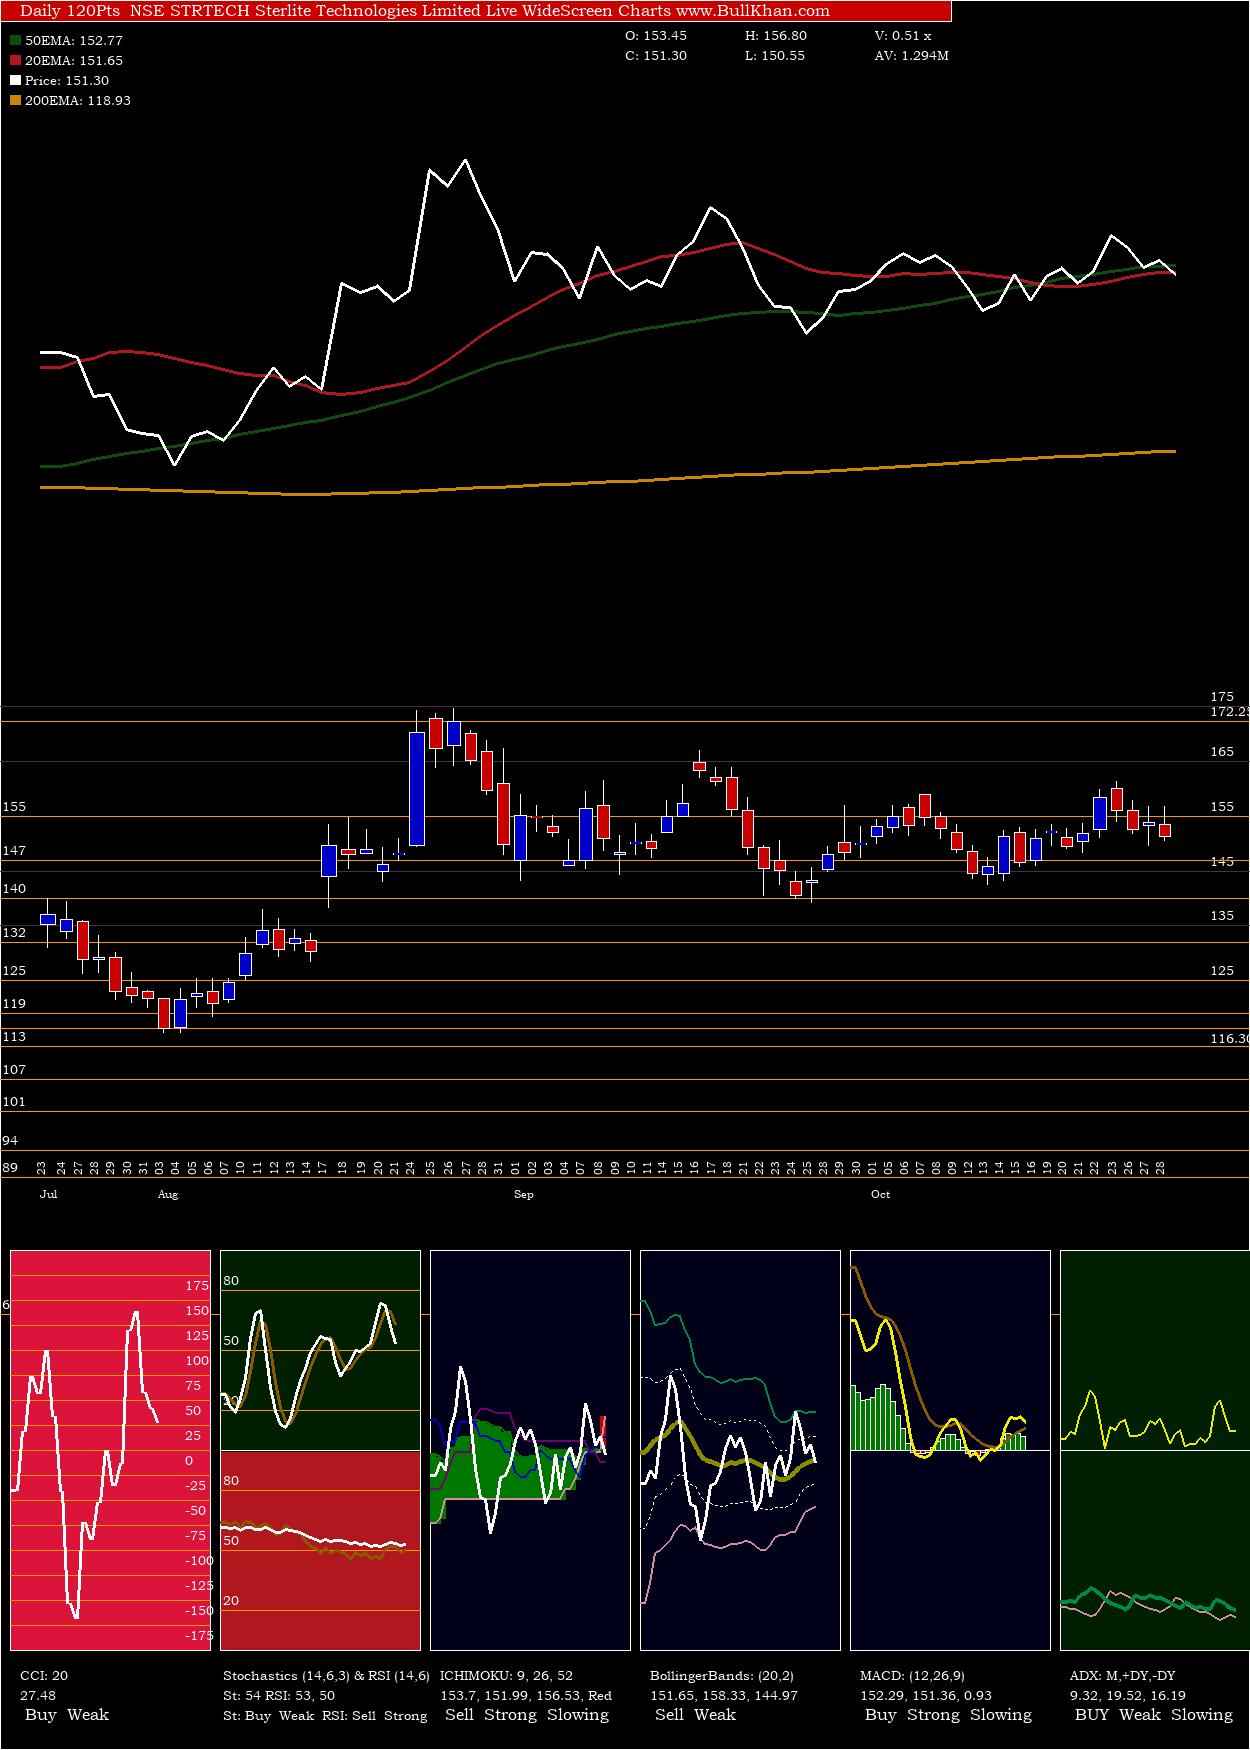 Sterlite Technologies Limited charts and indicators